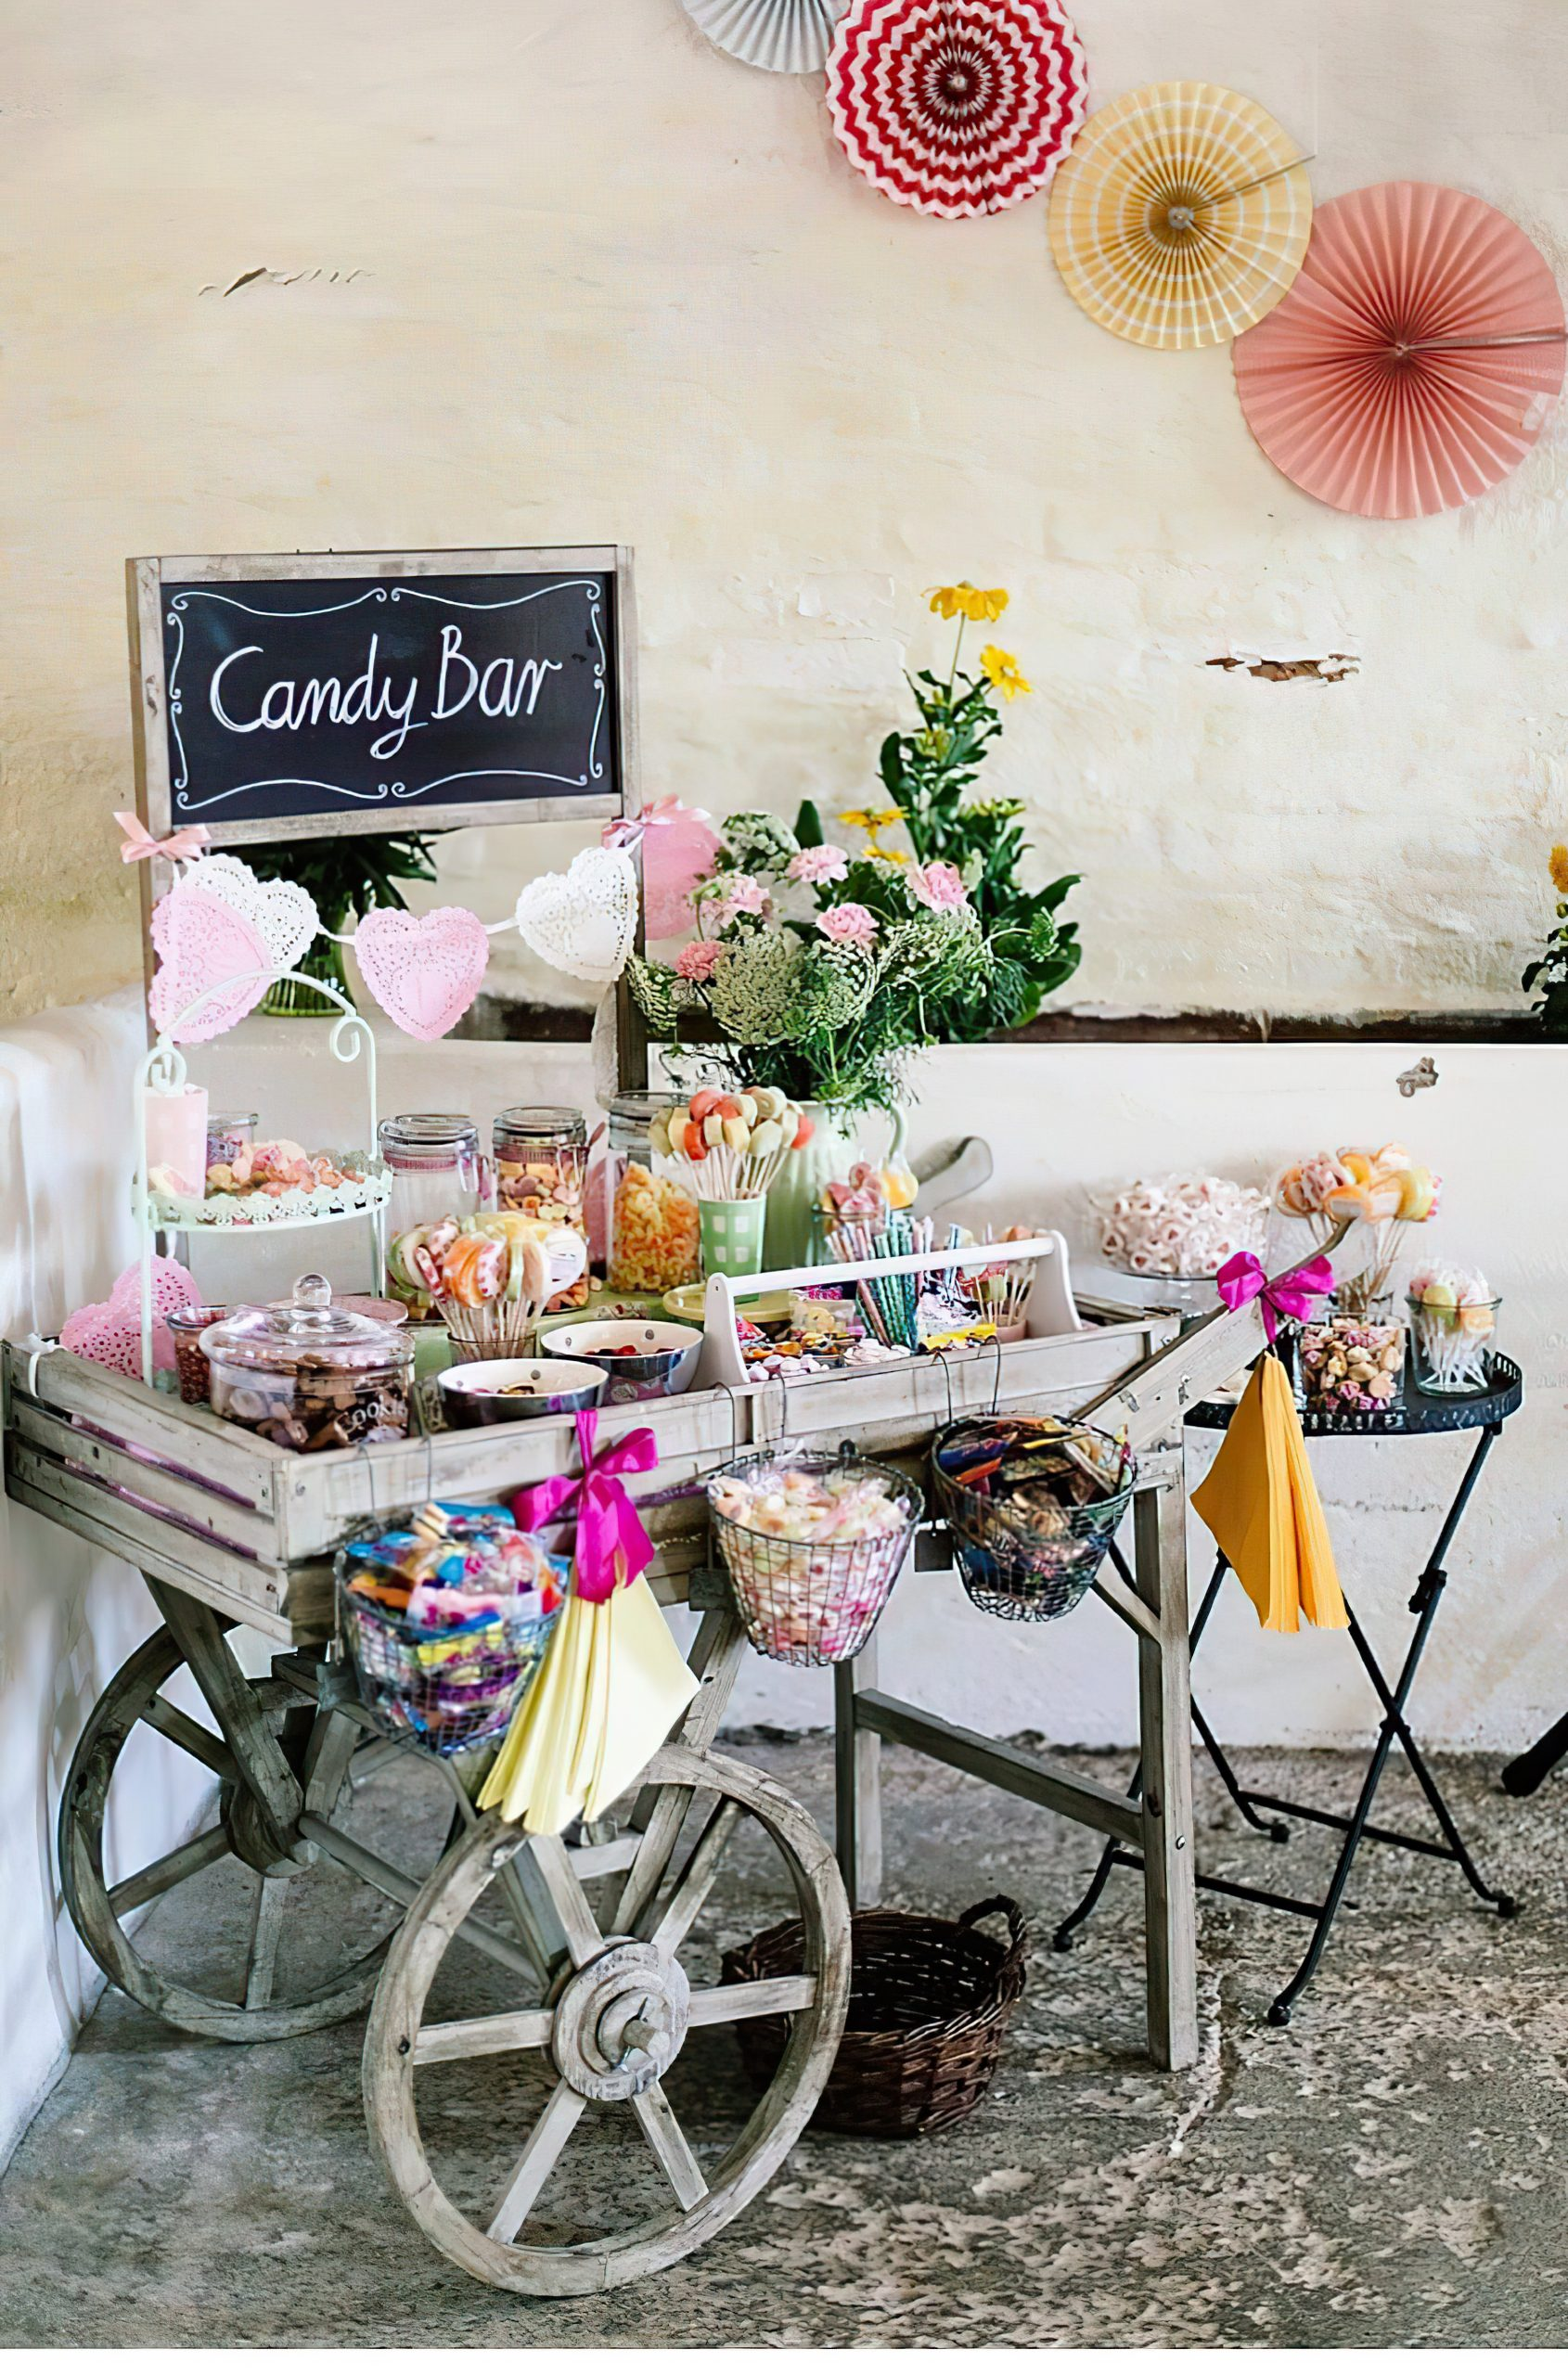 Настройка Sweet Candy Bar